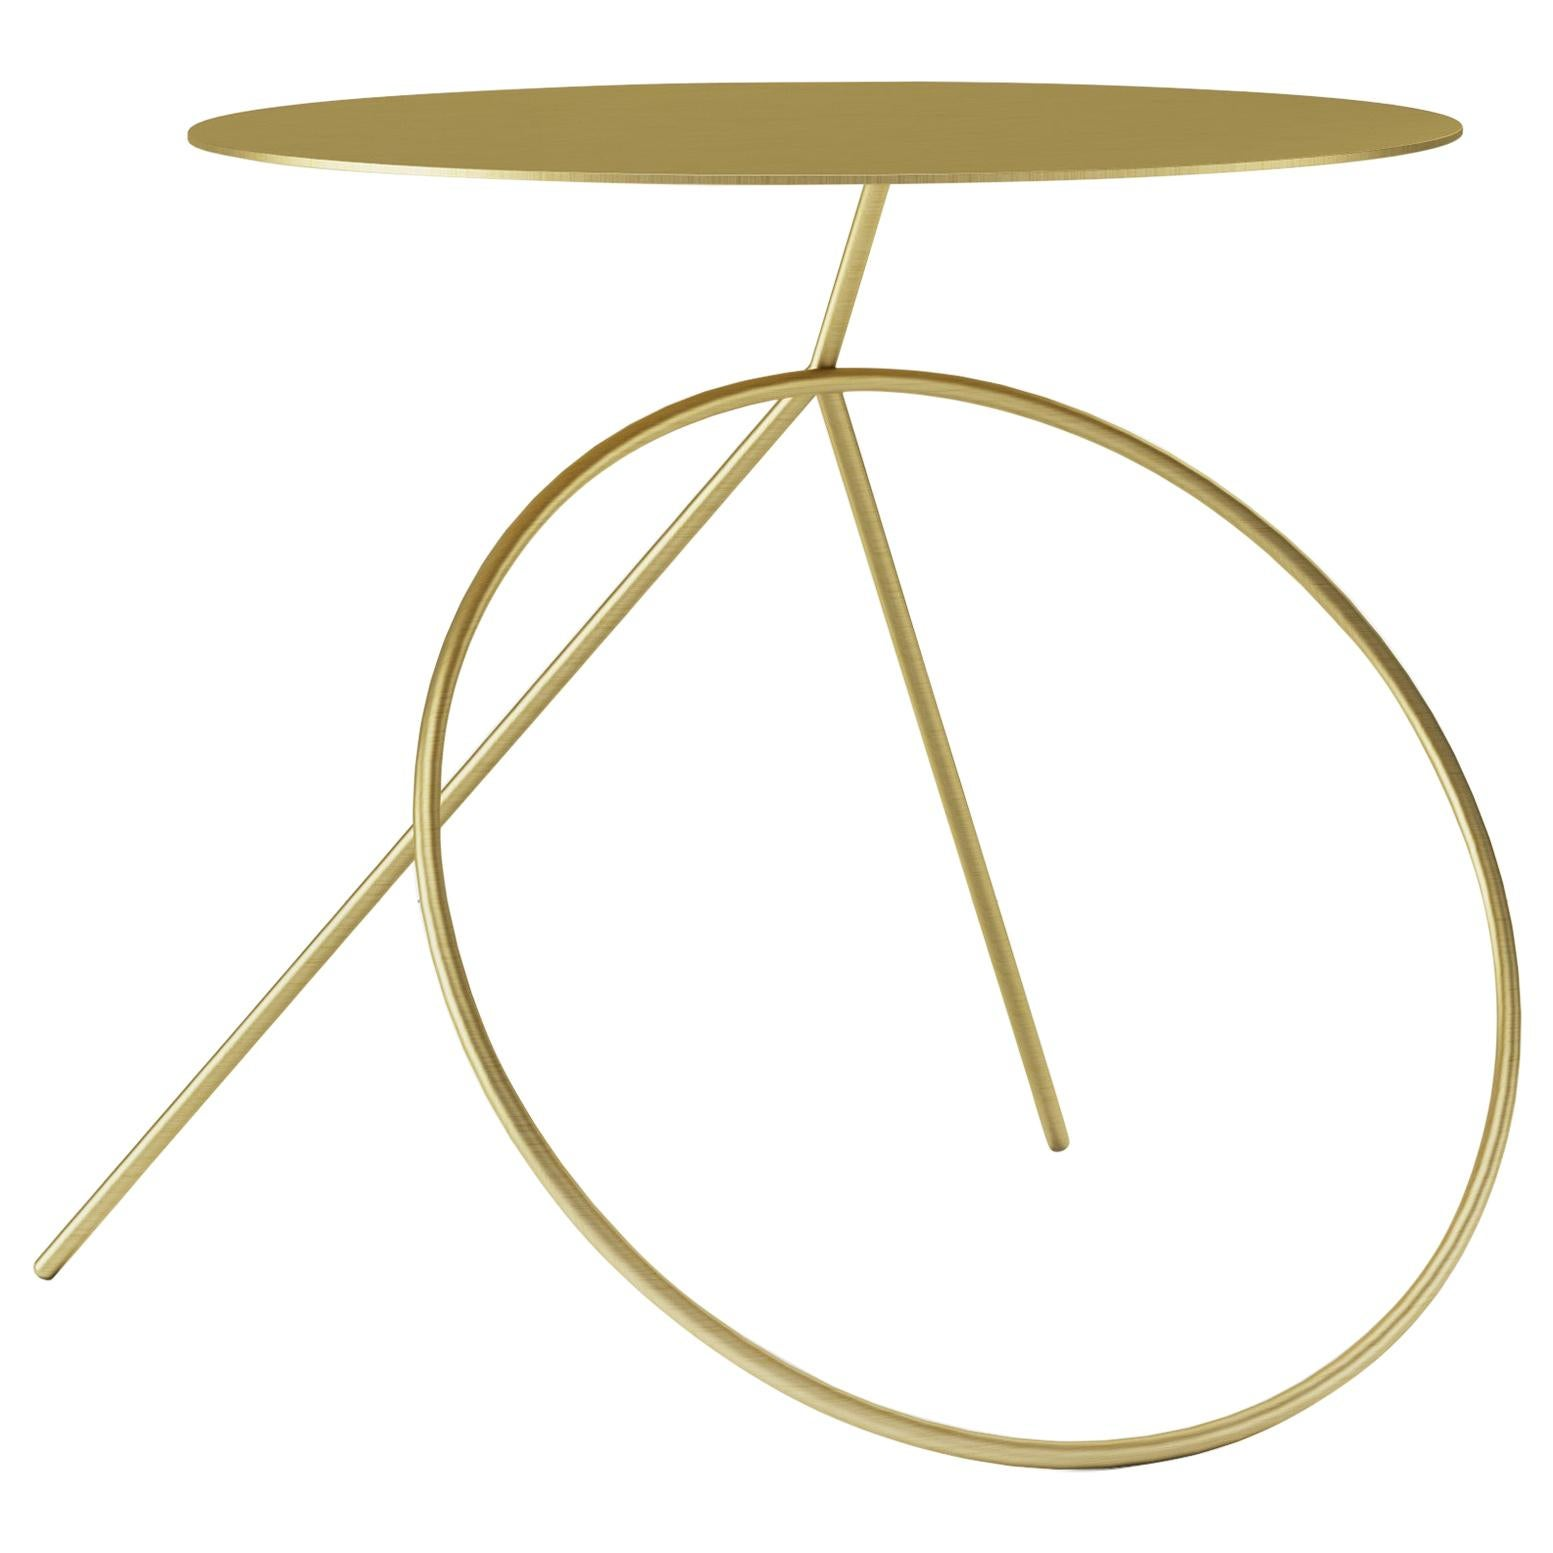 Viccarbe Bamba Side or Coffee Table, Brass Finish by Pedro Paulo Venzón